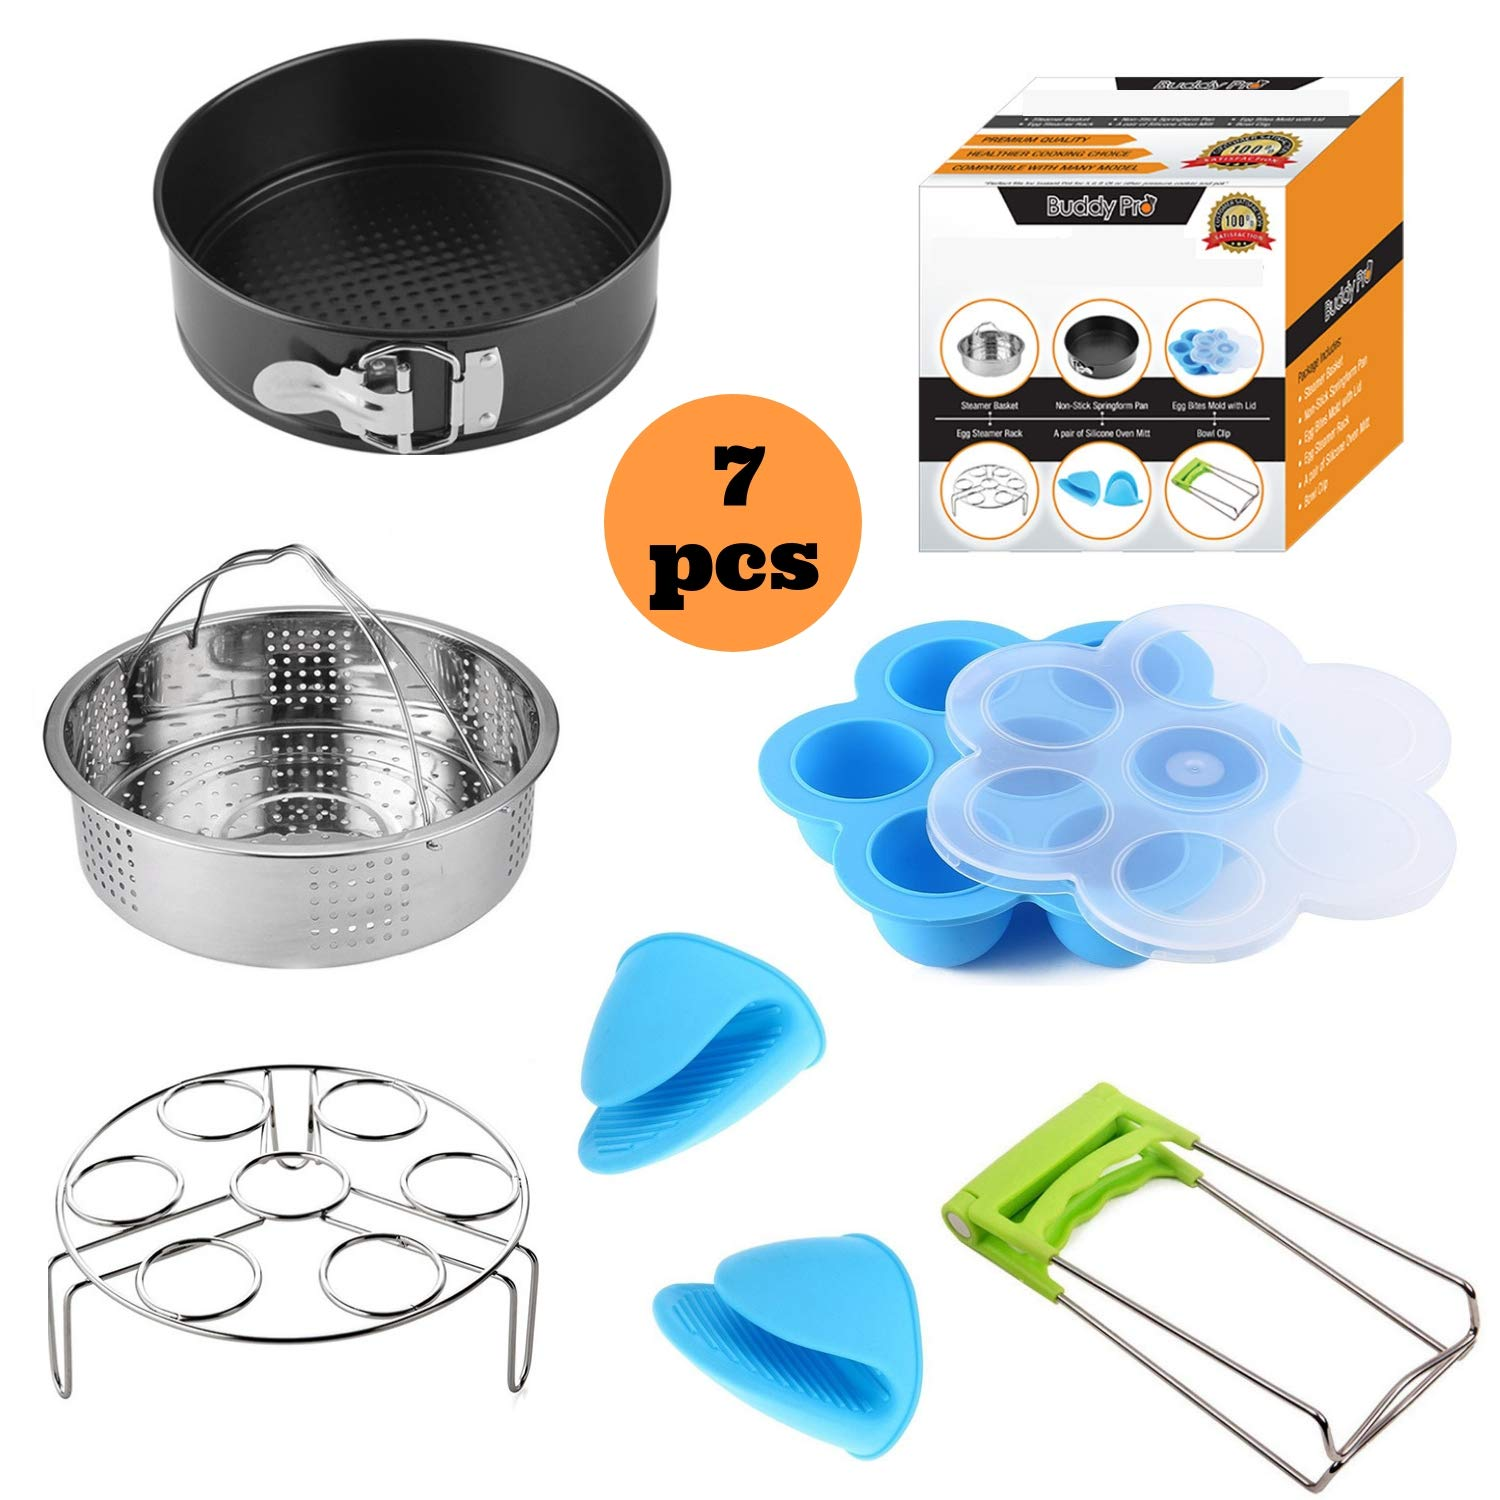 Buddy Pro Pressure Cooker Accessories Set Compatible with Instant Pot 5,6,8 QT,Compatible Instapot Accessory Kit,Steamer Basket,Silicone Egg Bite Mold,Non Stick SpringForm Pan,EggStamer Rack,Oven Mitt by Buddy Pro